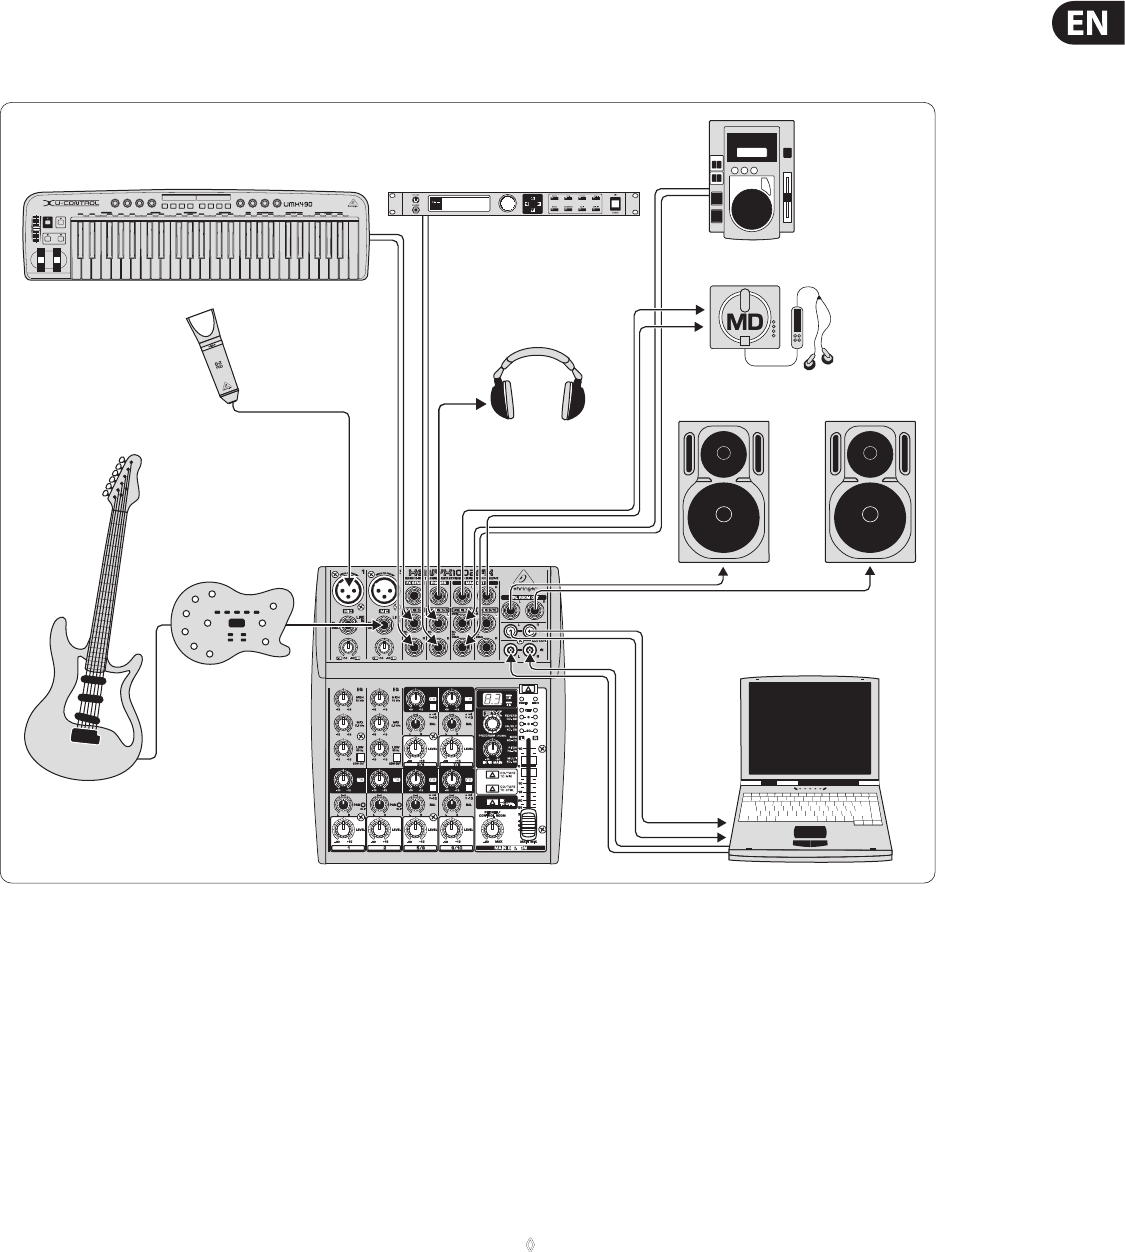 Behringer Xenyx 1202Fx Users Manual 1202FX/1002FX